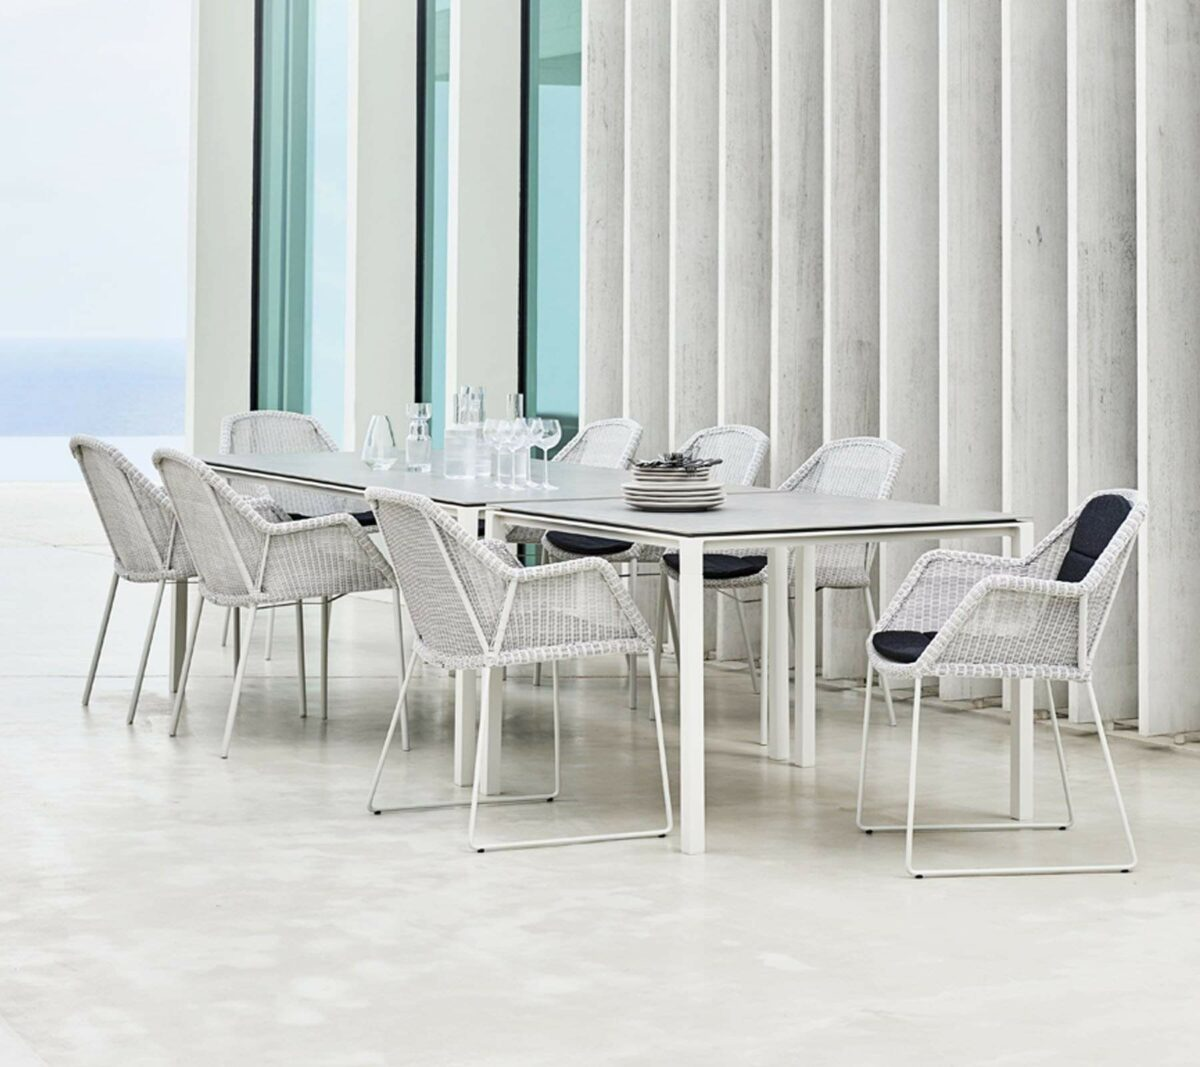 0001 Breeze chair pure dining table 4 1571336093